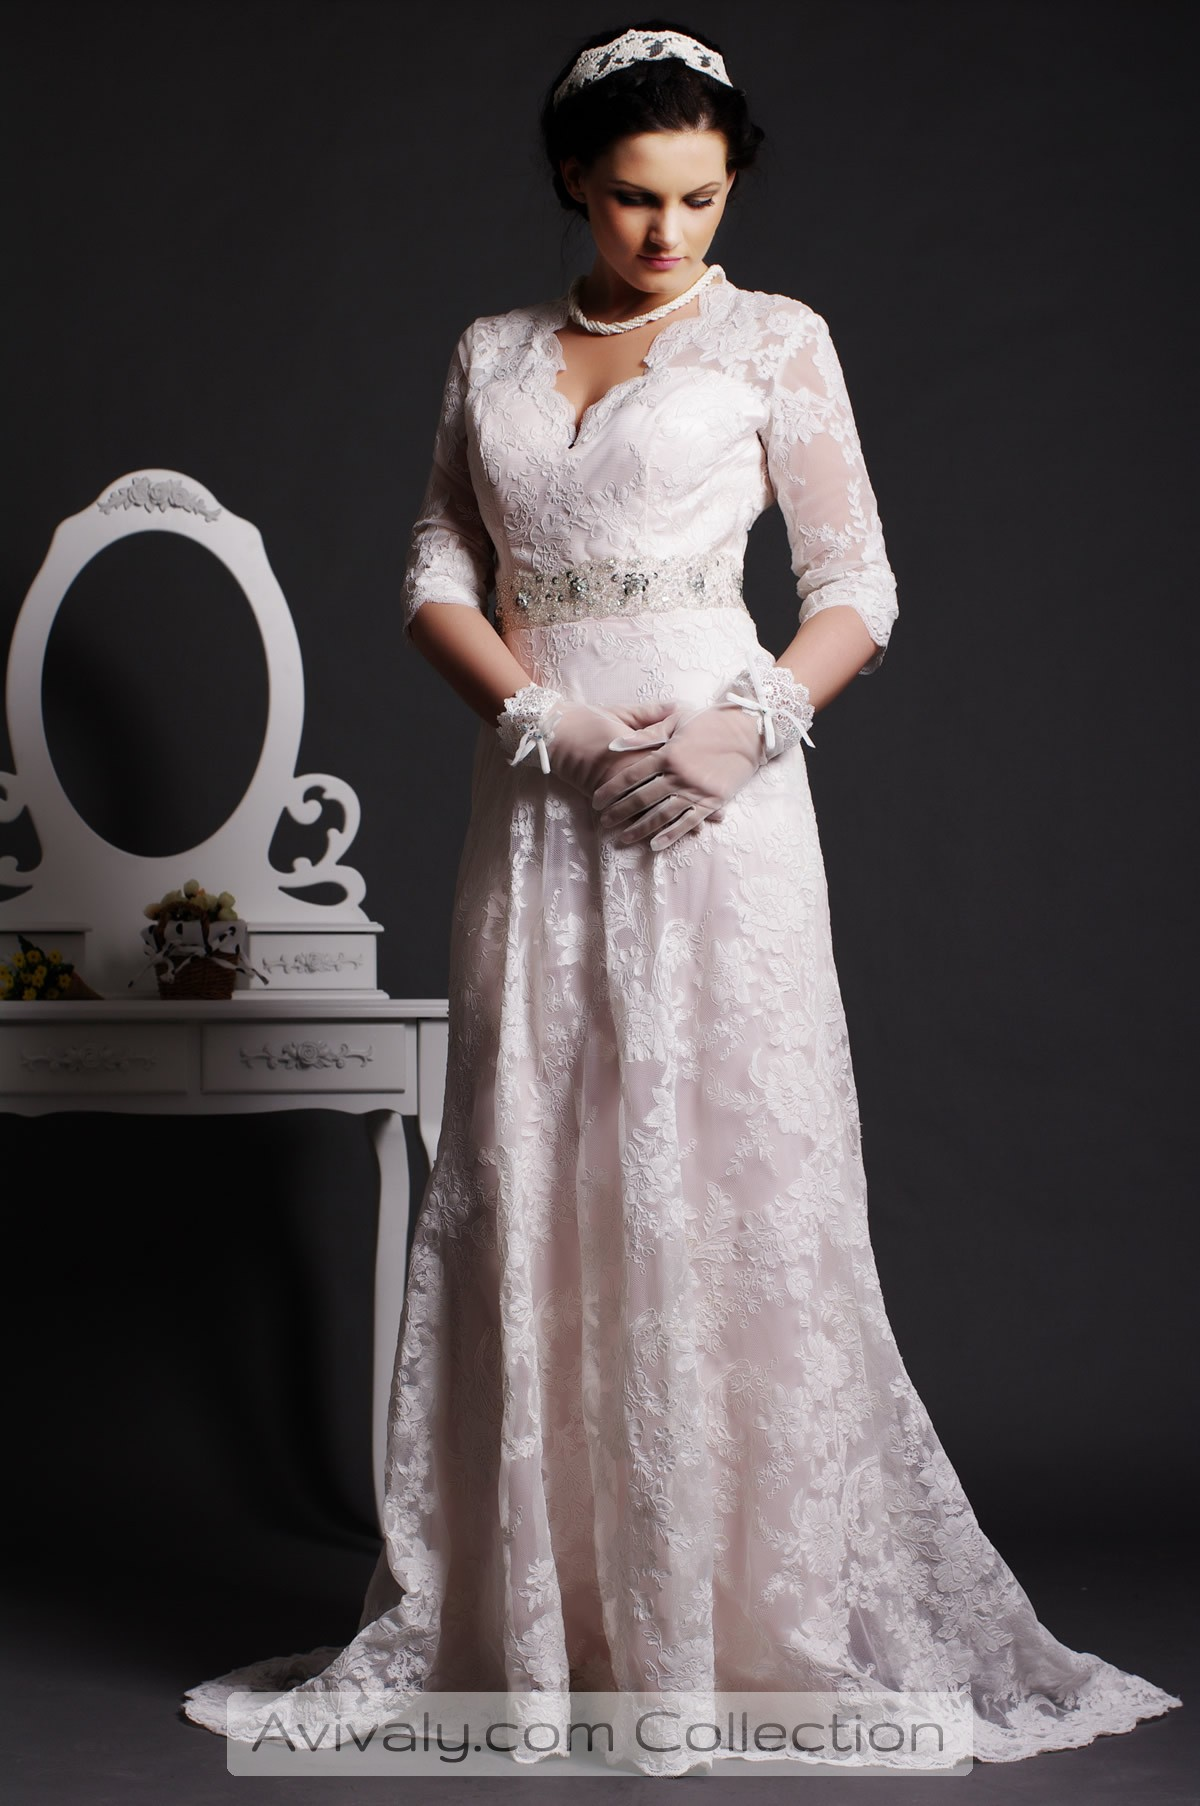 Bela - Lace 3/4 Sleeves A-line Floor-sweeping Wedding Dress with Beaded Sash